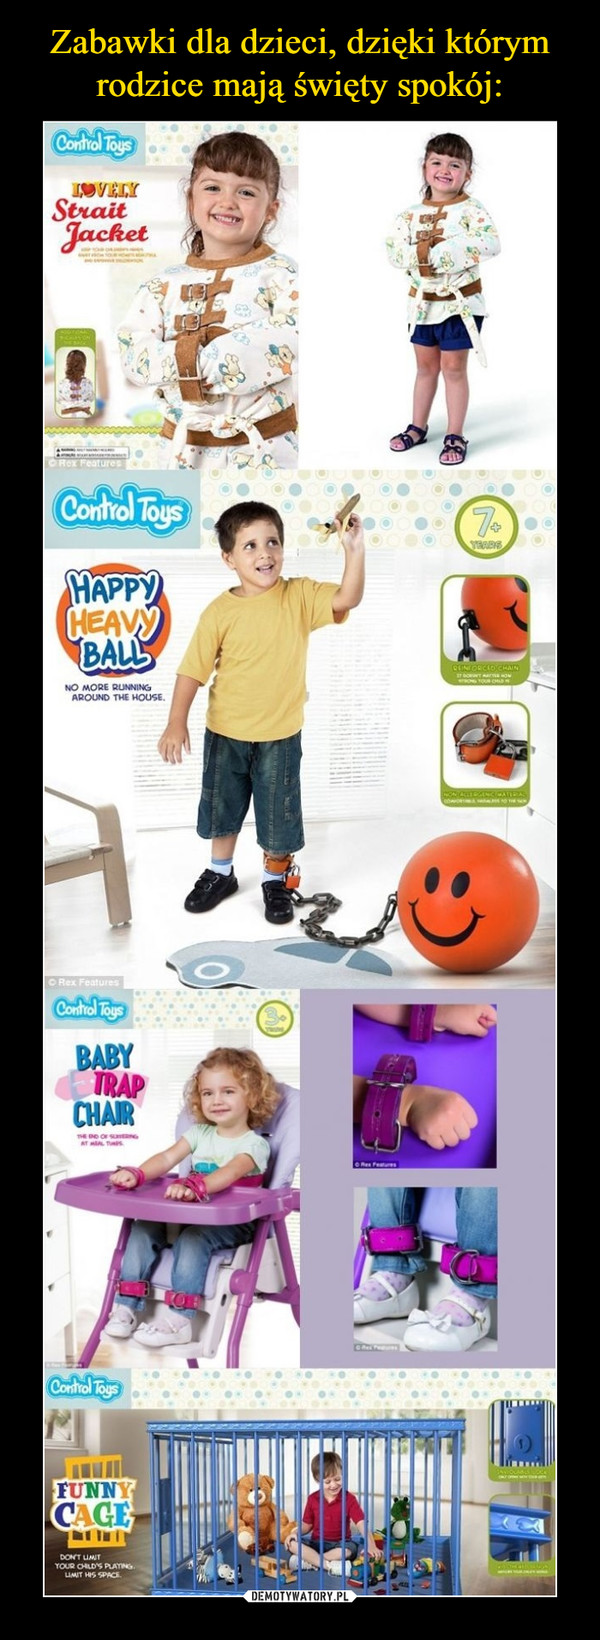 –  Happy heavy ball Baby trap chair